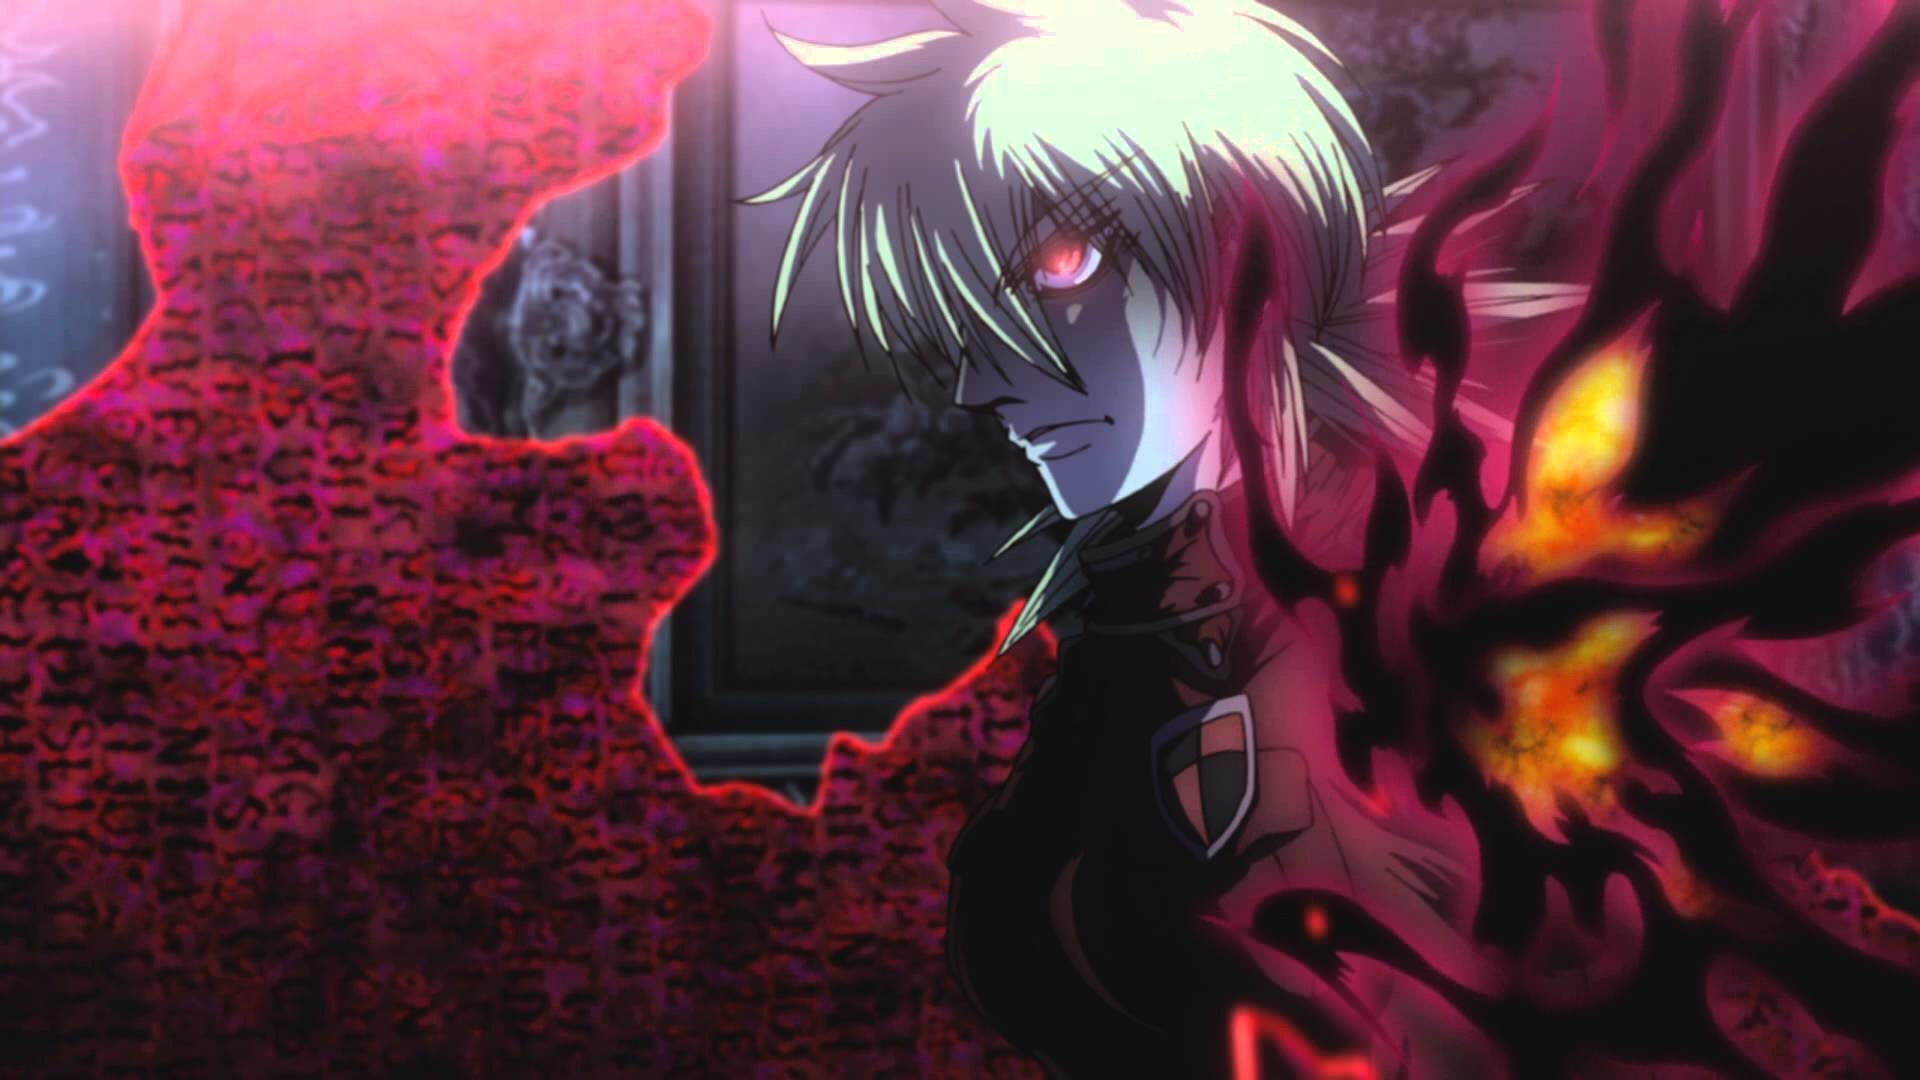 1920x1080 Hellsing Ultimate Seras Victoria vs Zorin Blitz BD 1080p [Part 2] [ENG DUB]  - [Ultimate Quality] - YouTube